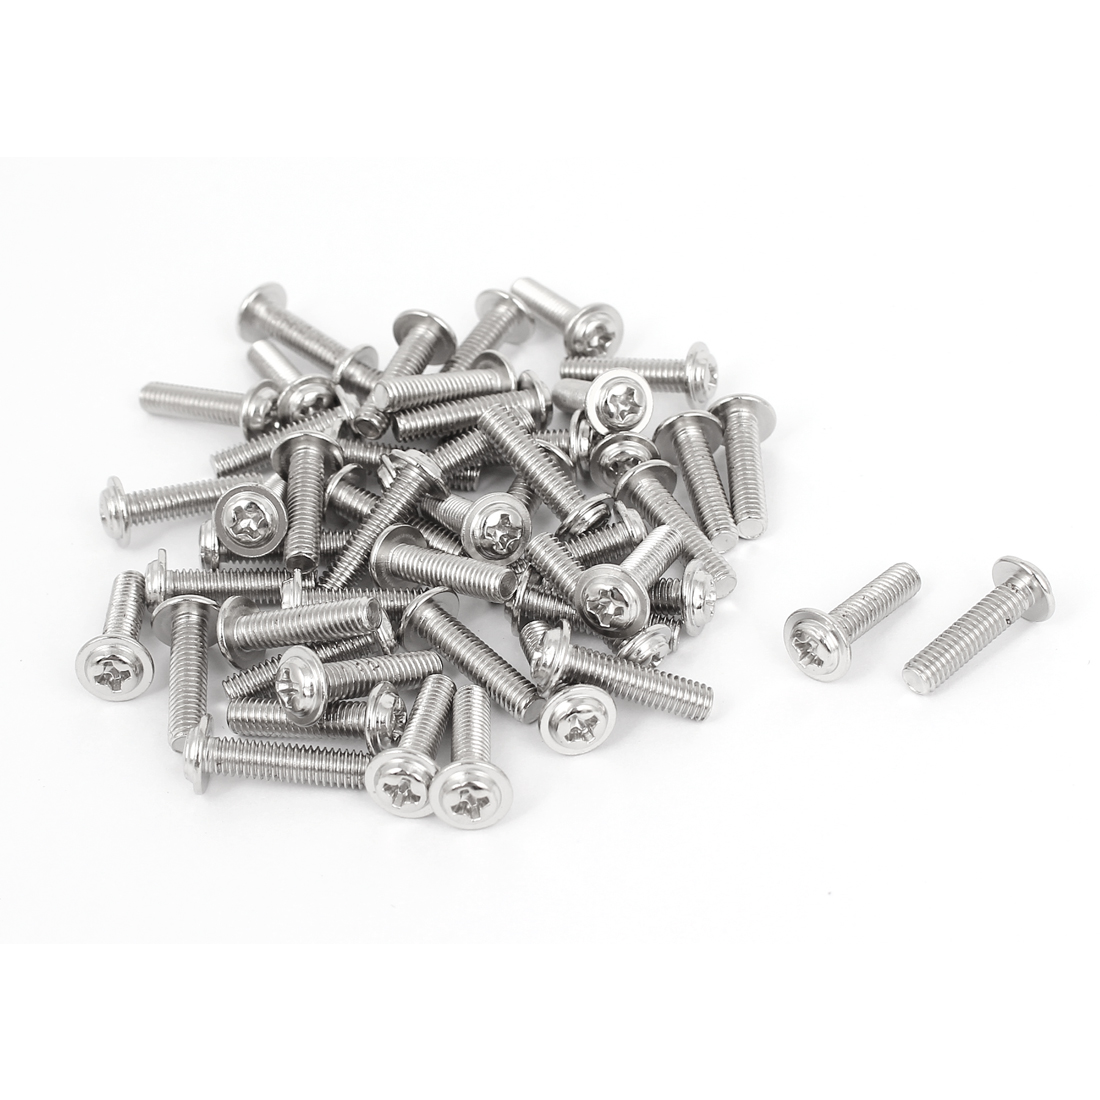 50 Pcs M4x16mm Phillips Countersunk Head Socket Bolts Machine Screws Fasteners